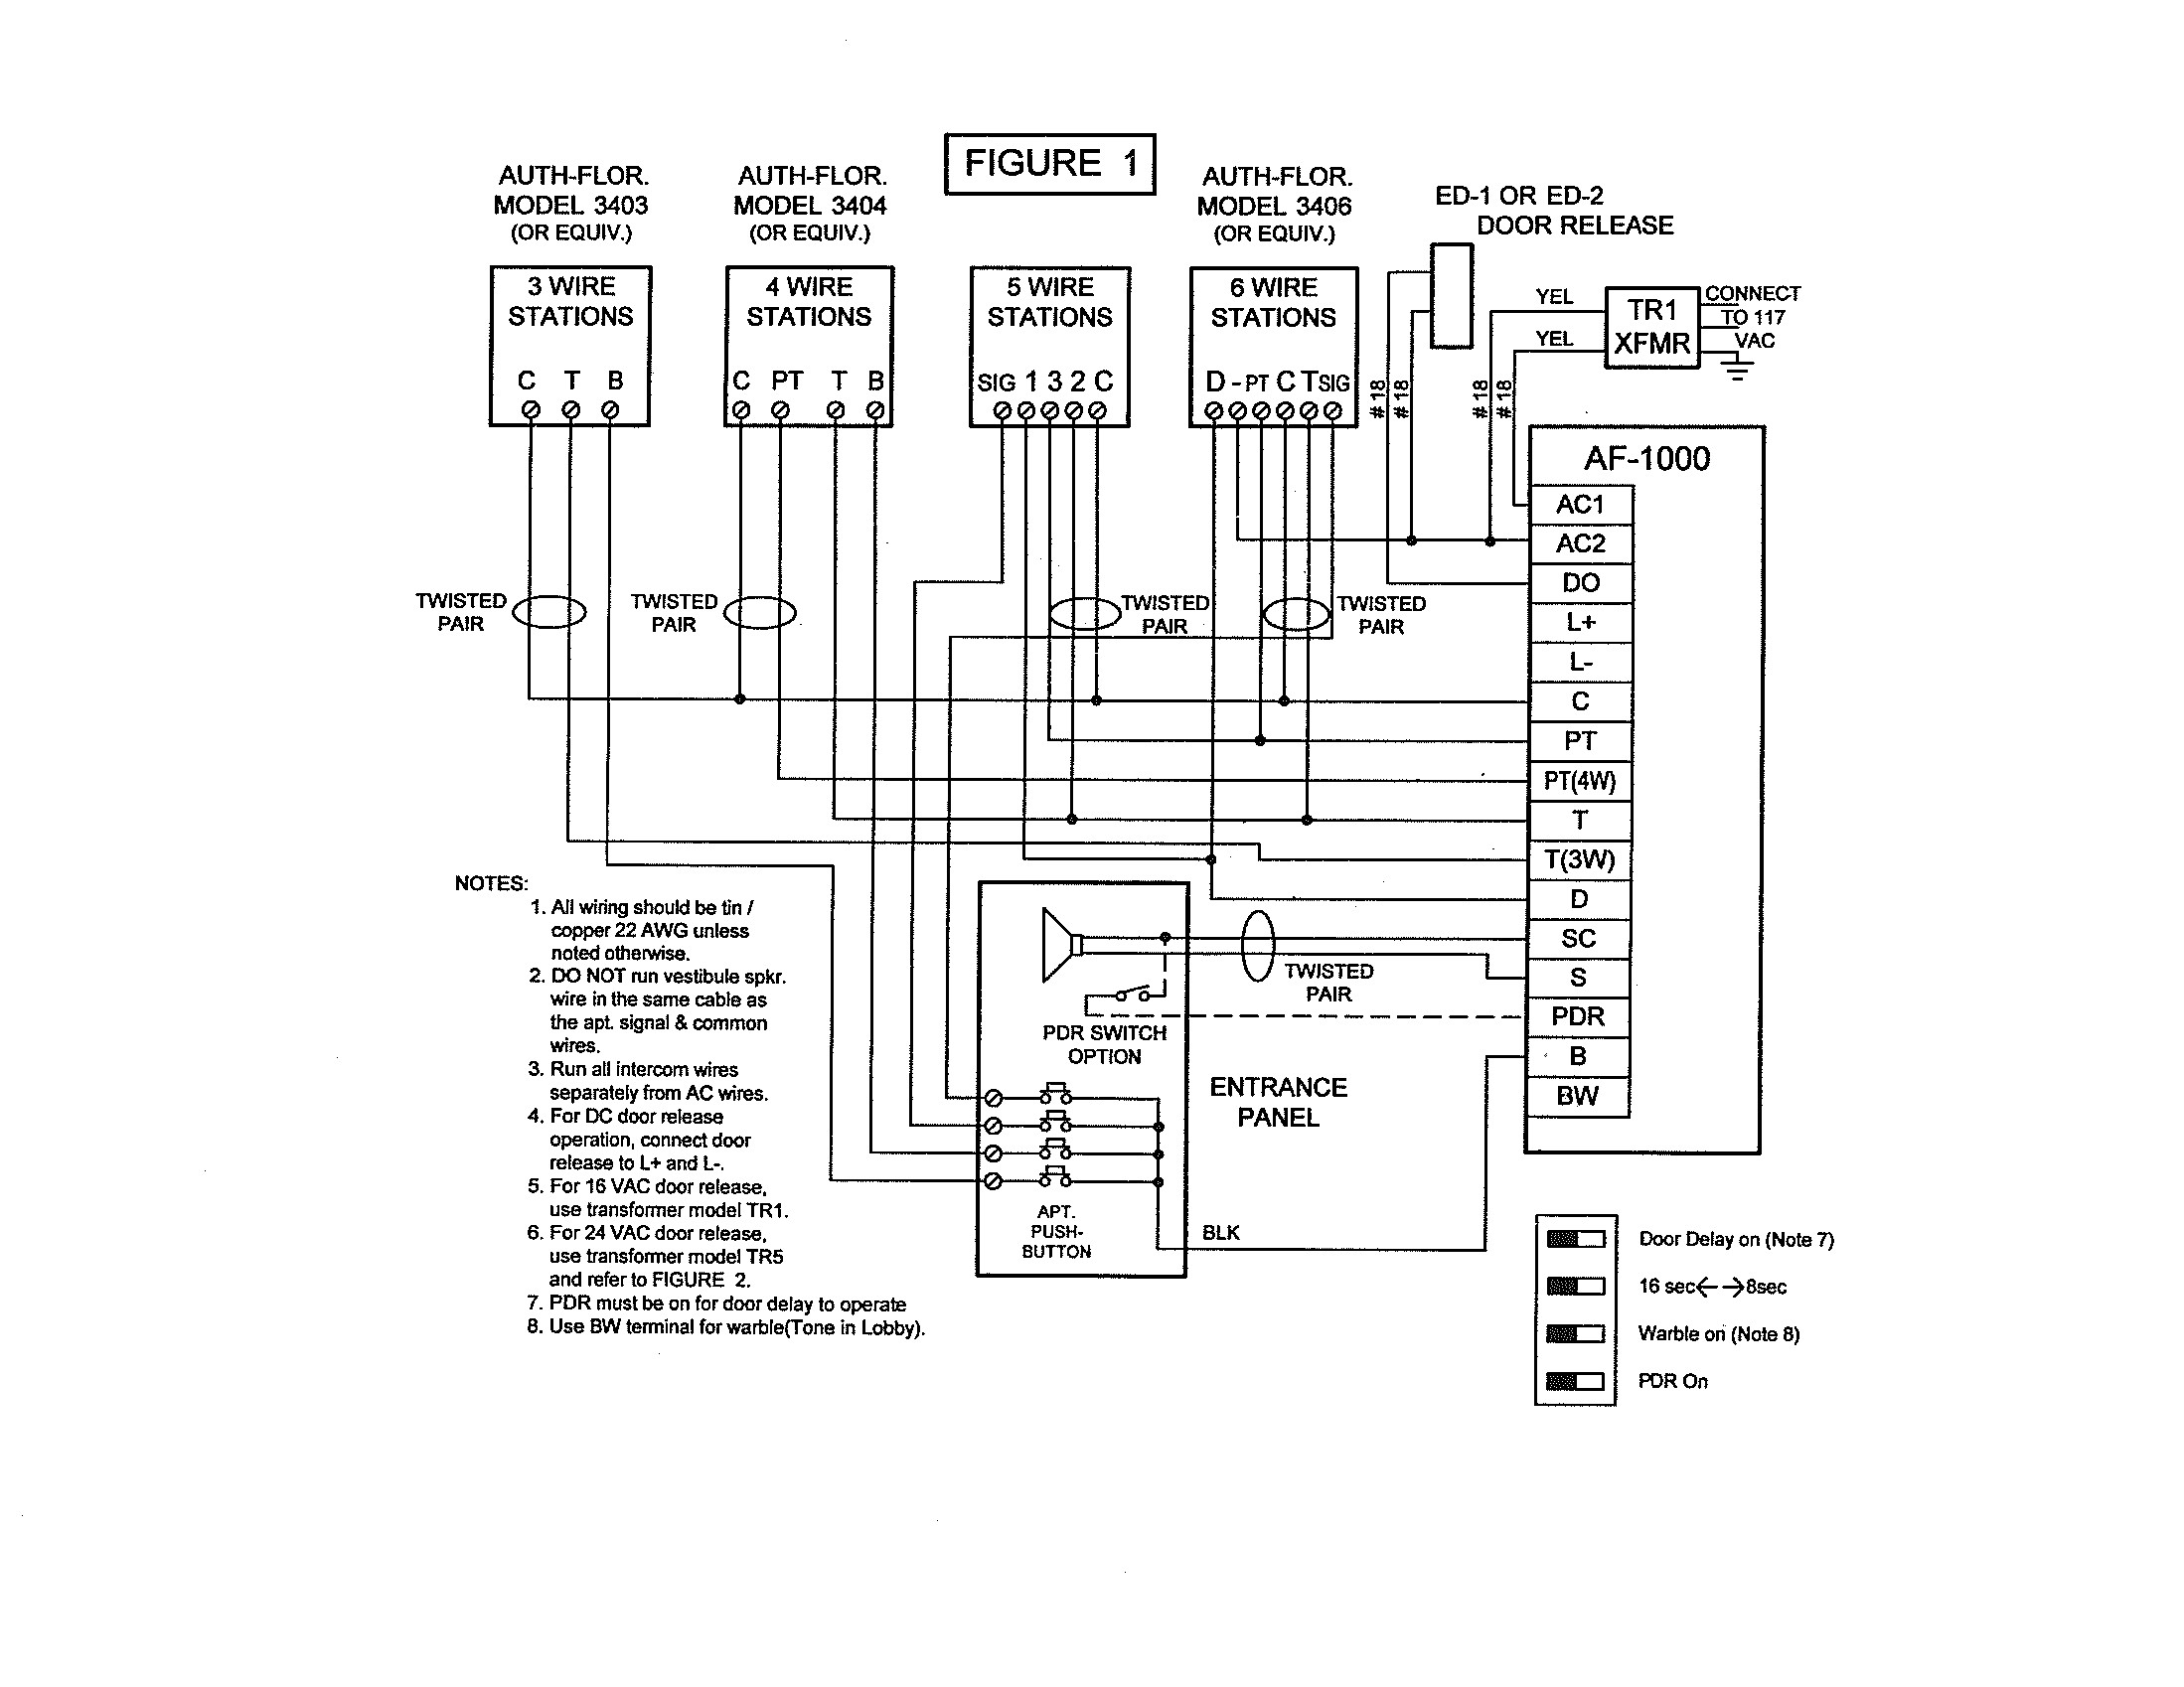 Inter Systems Wiring Diagram - Wiring Schematics Diagram on faria gauges wiring-diagram, wind turbine wiring-diagram, home entertainment wiring-diagram, atomic four wiring-diagram, 2003 nissan murano wiring-diagram, solar wiring-diagram,